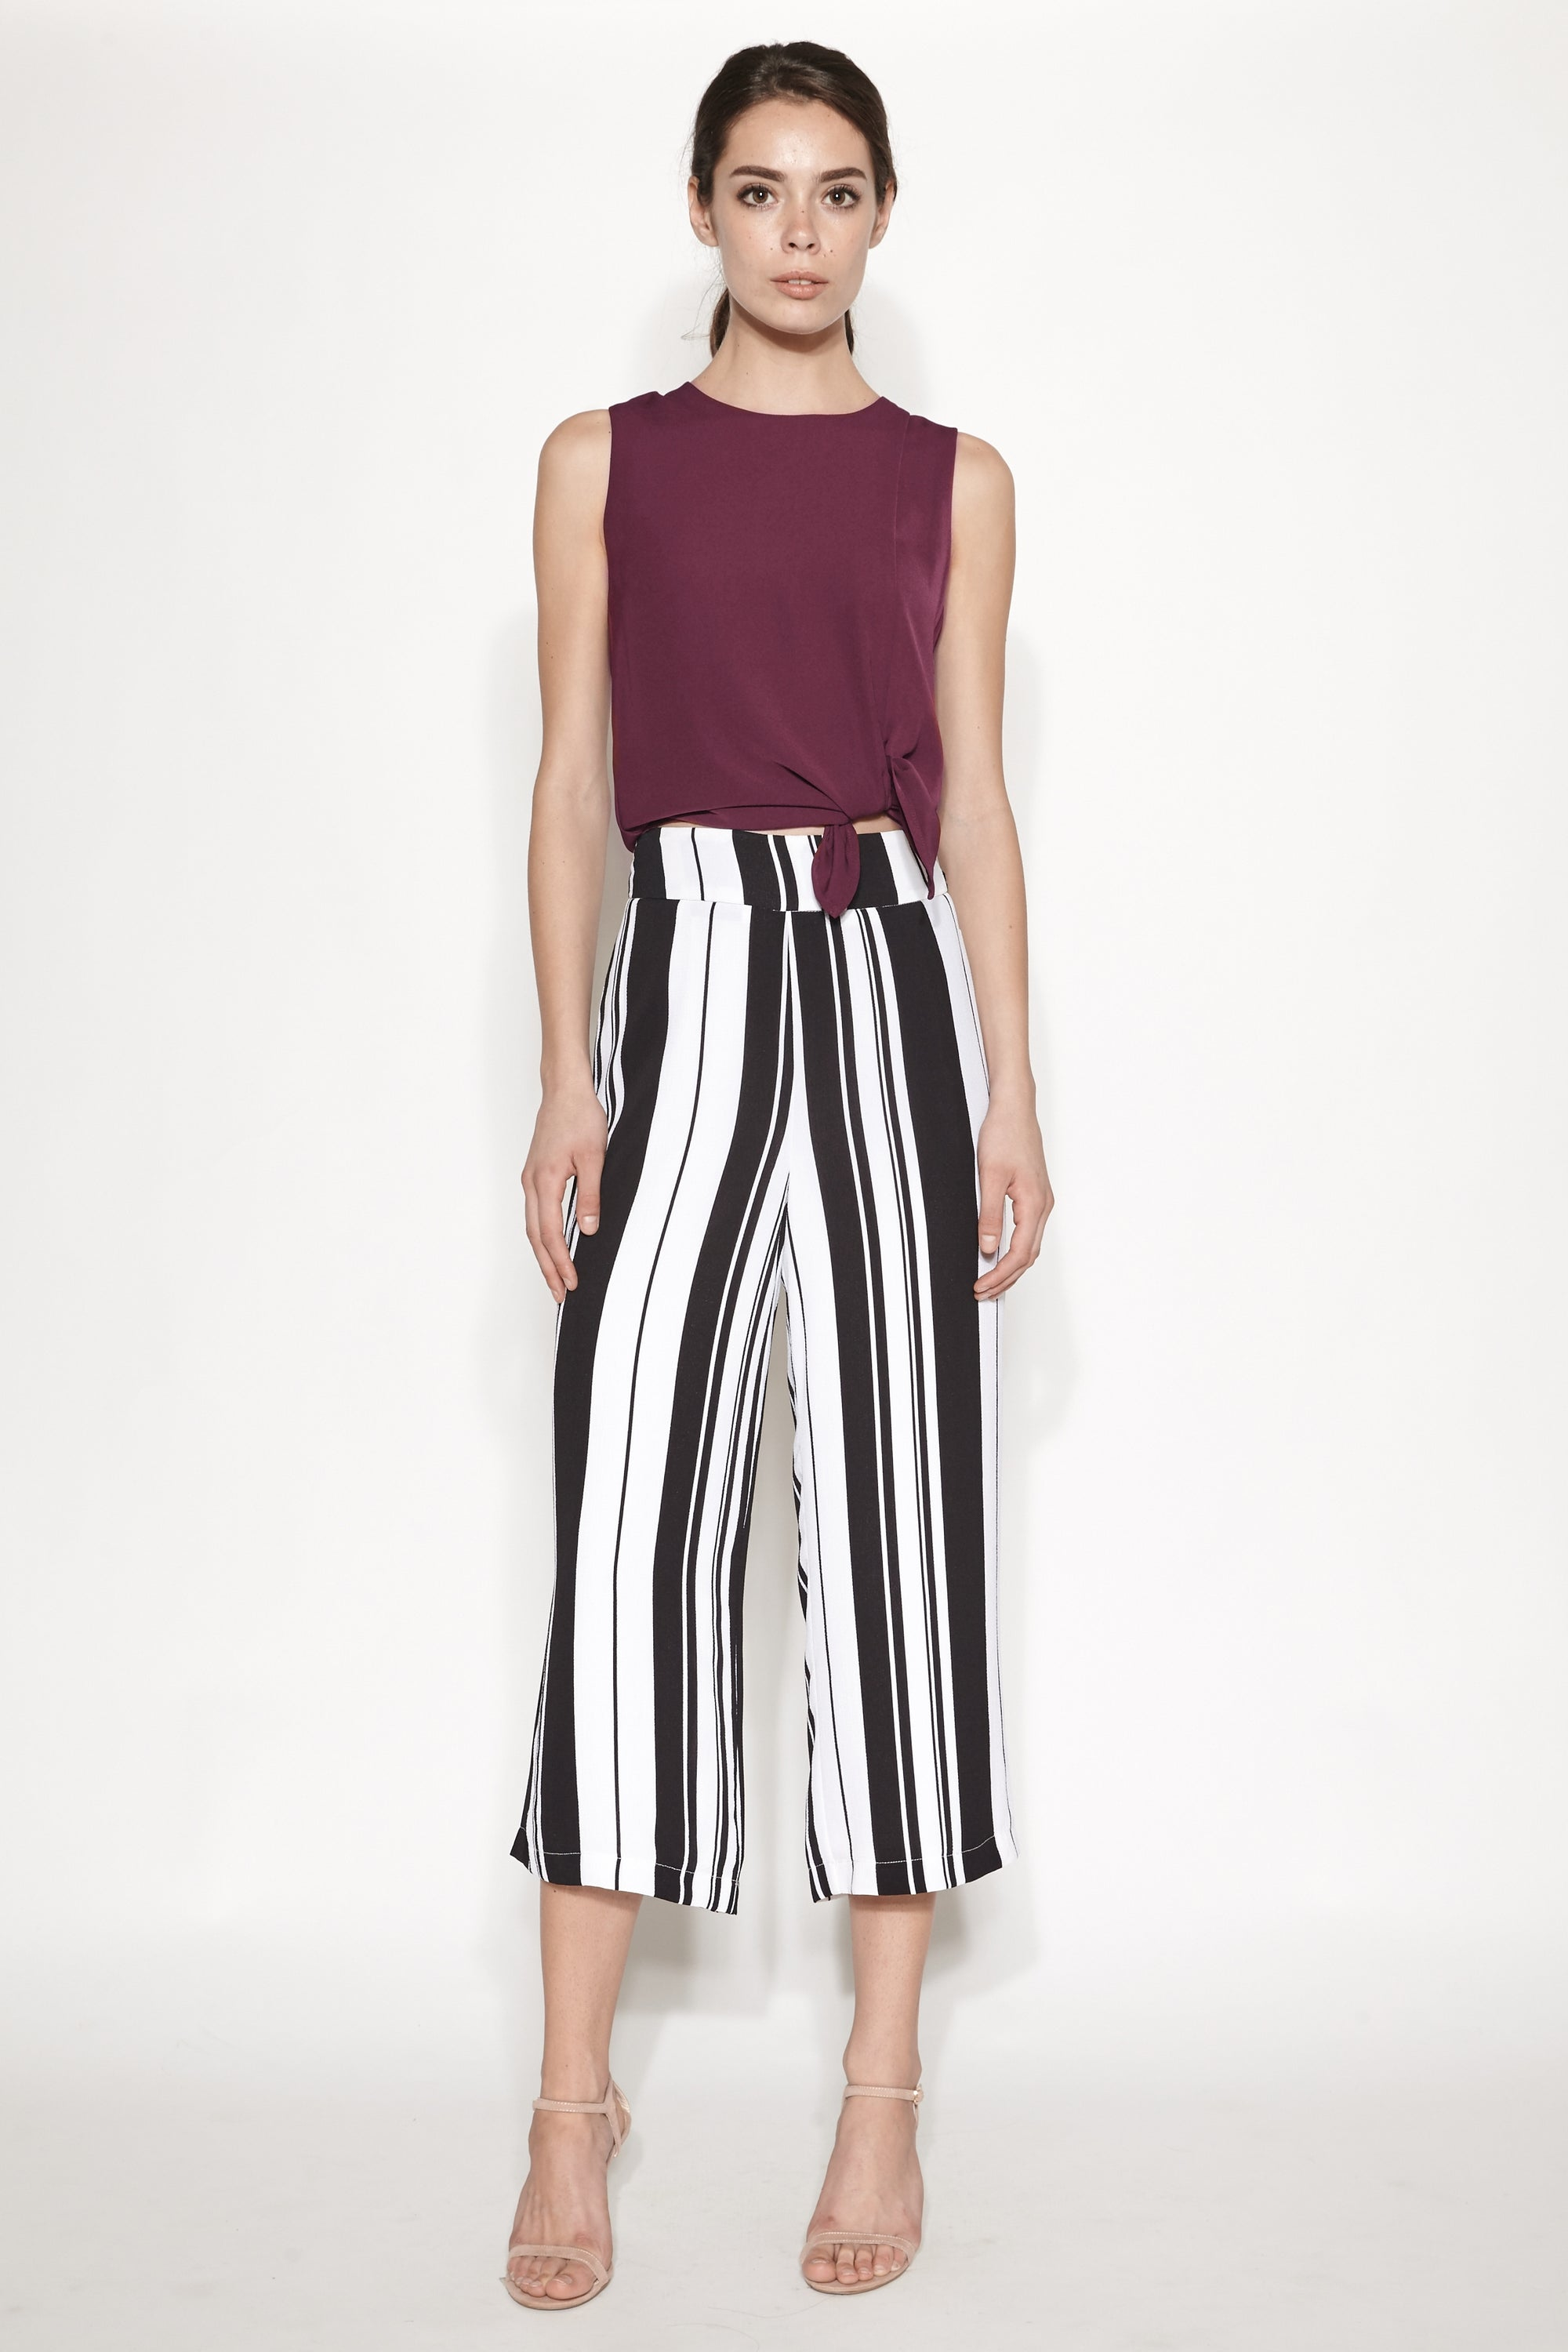 Asymmetrical Top with Slit in Maroon